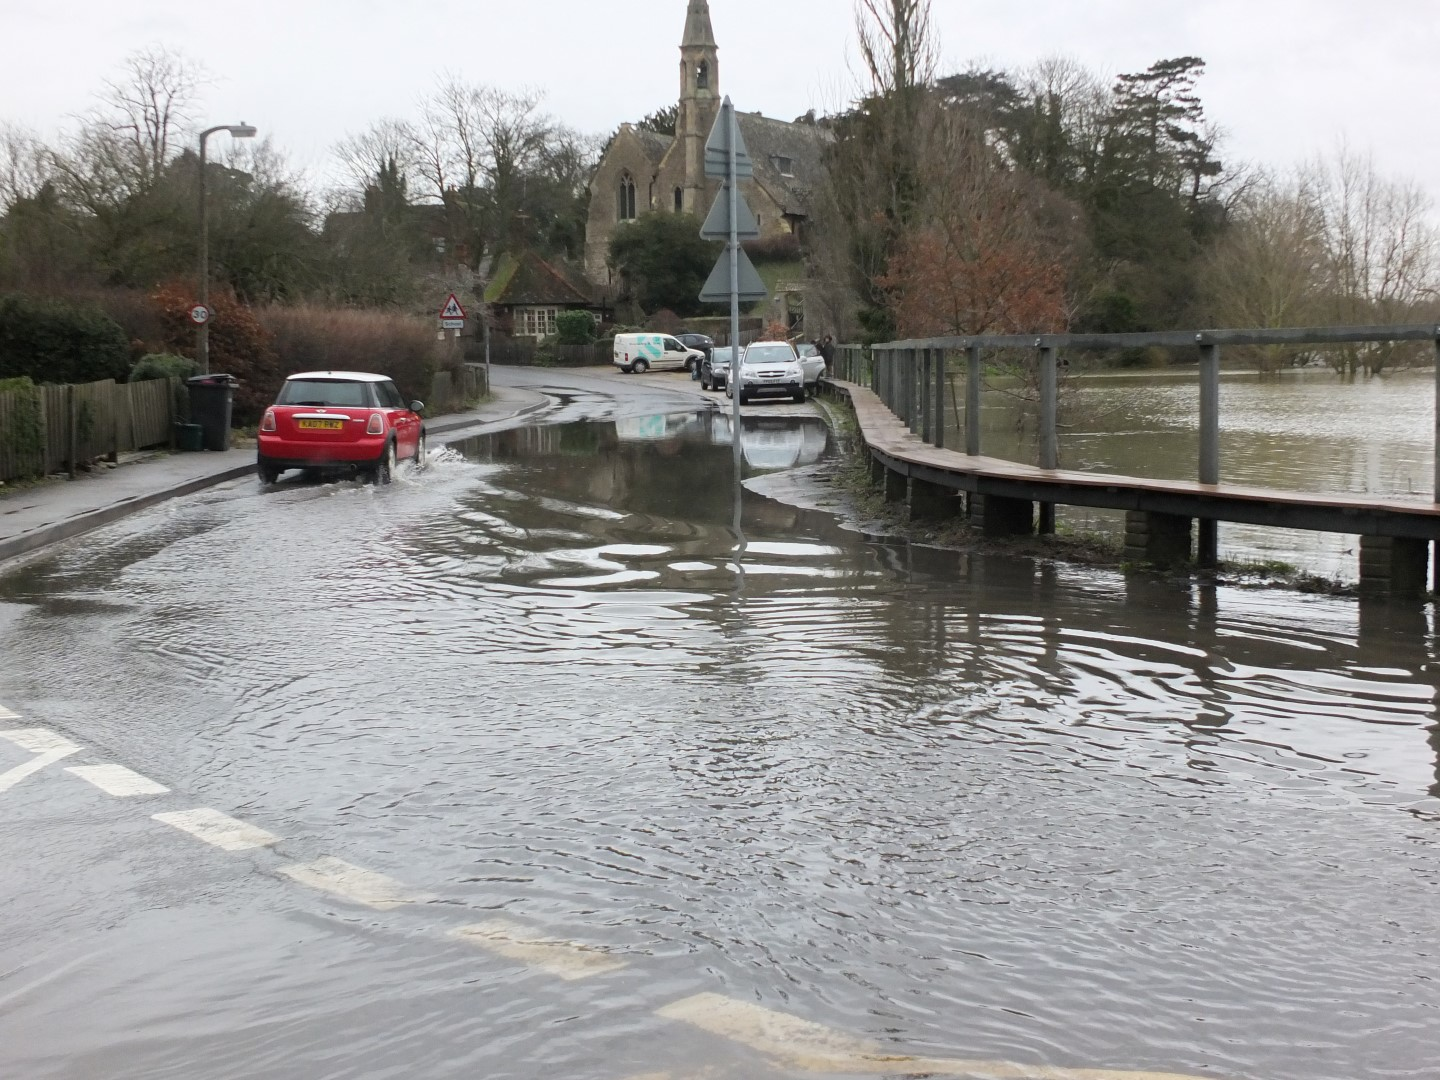 Flood risk check – Can I check my flood risk for FREE?